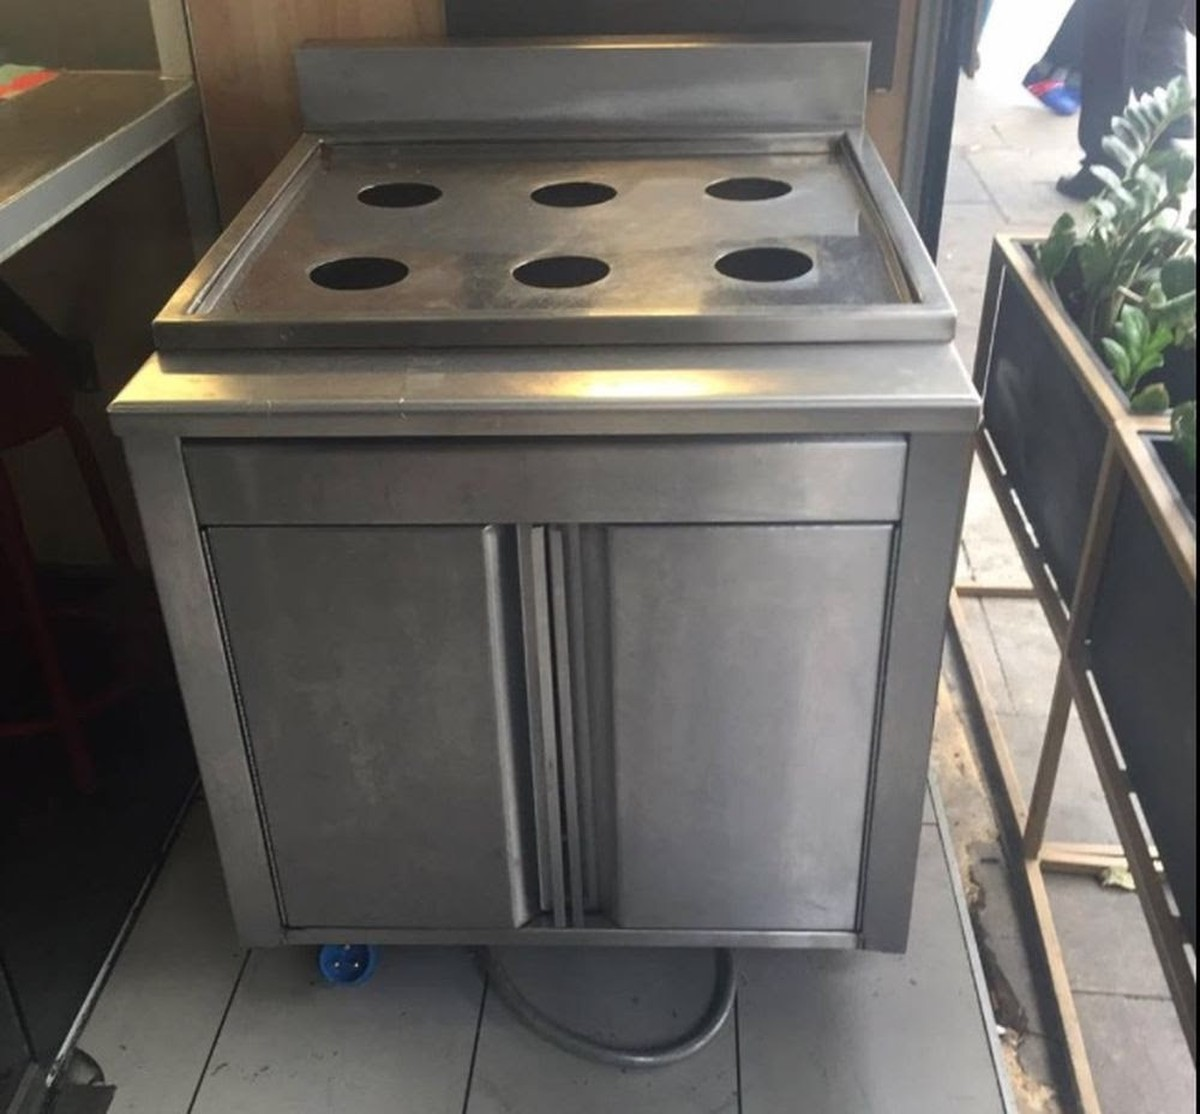 Secondhand Catering Equipment Steam Cookers 2x